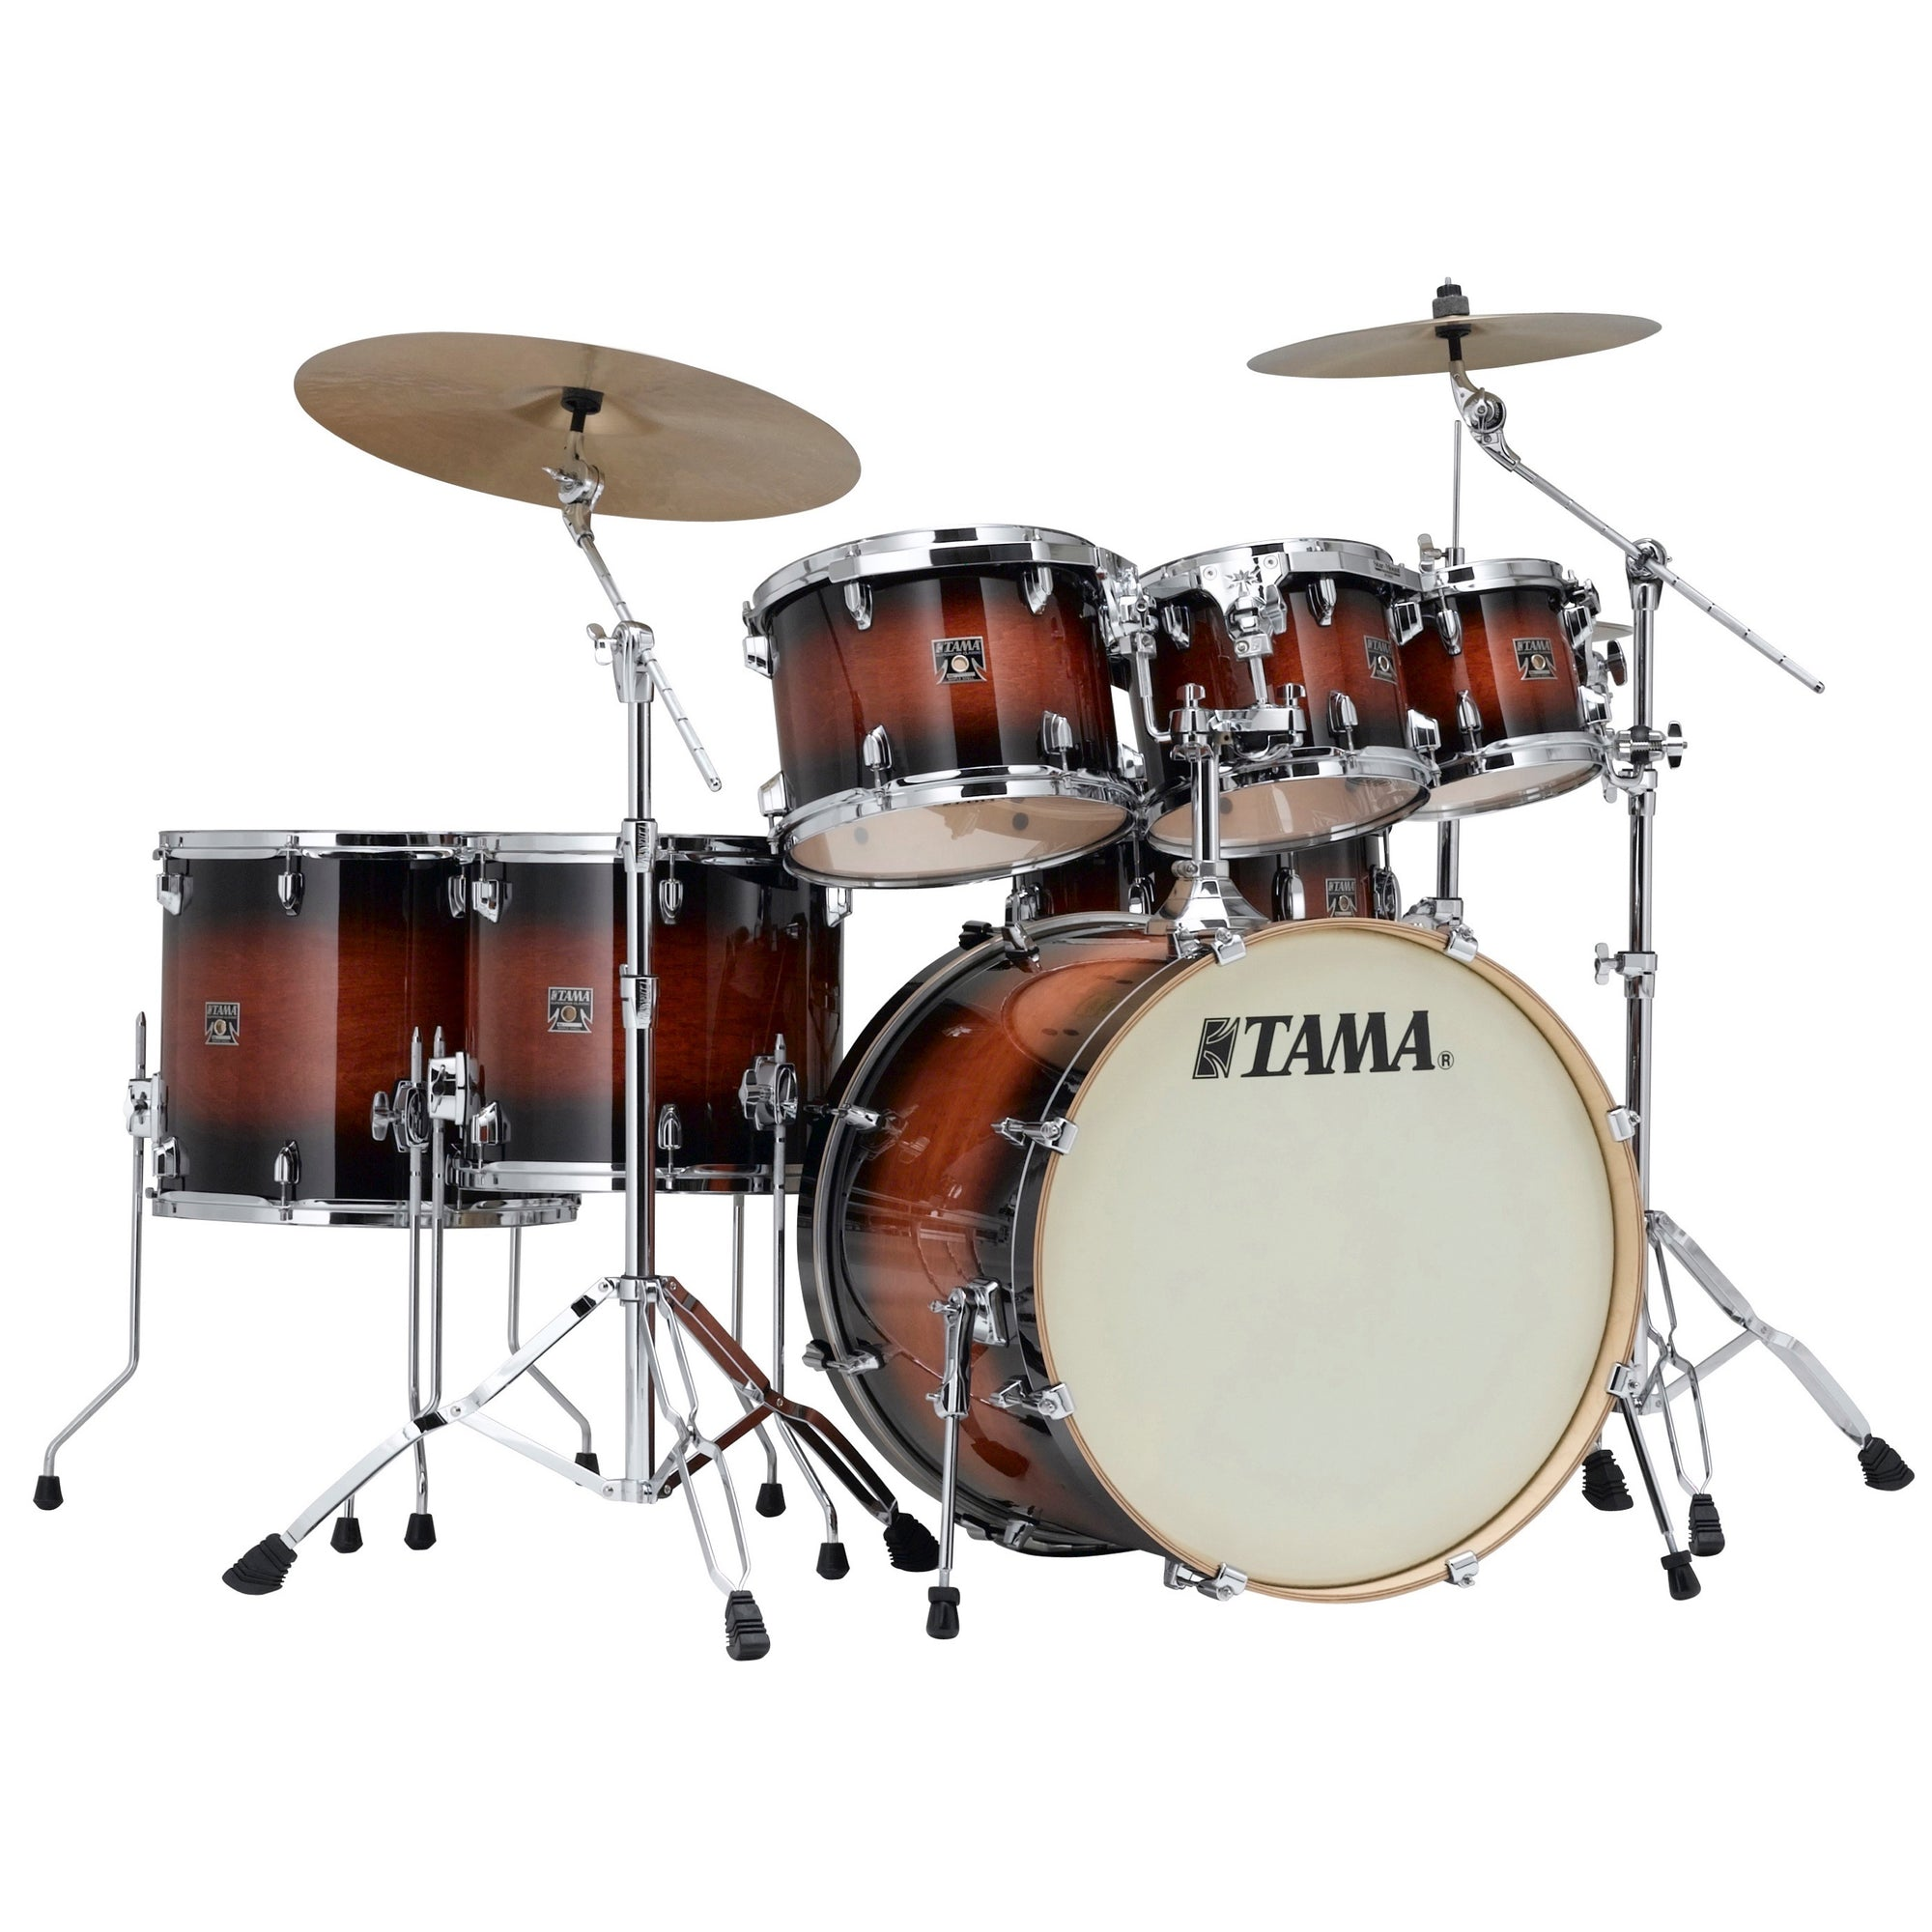 Tama CL72S Superstar Classic Drum Shell Kit, 7-Piece, Mahogany Burst